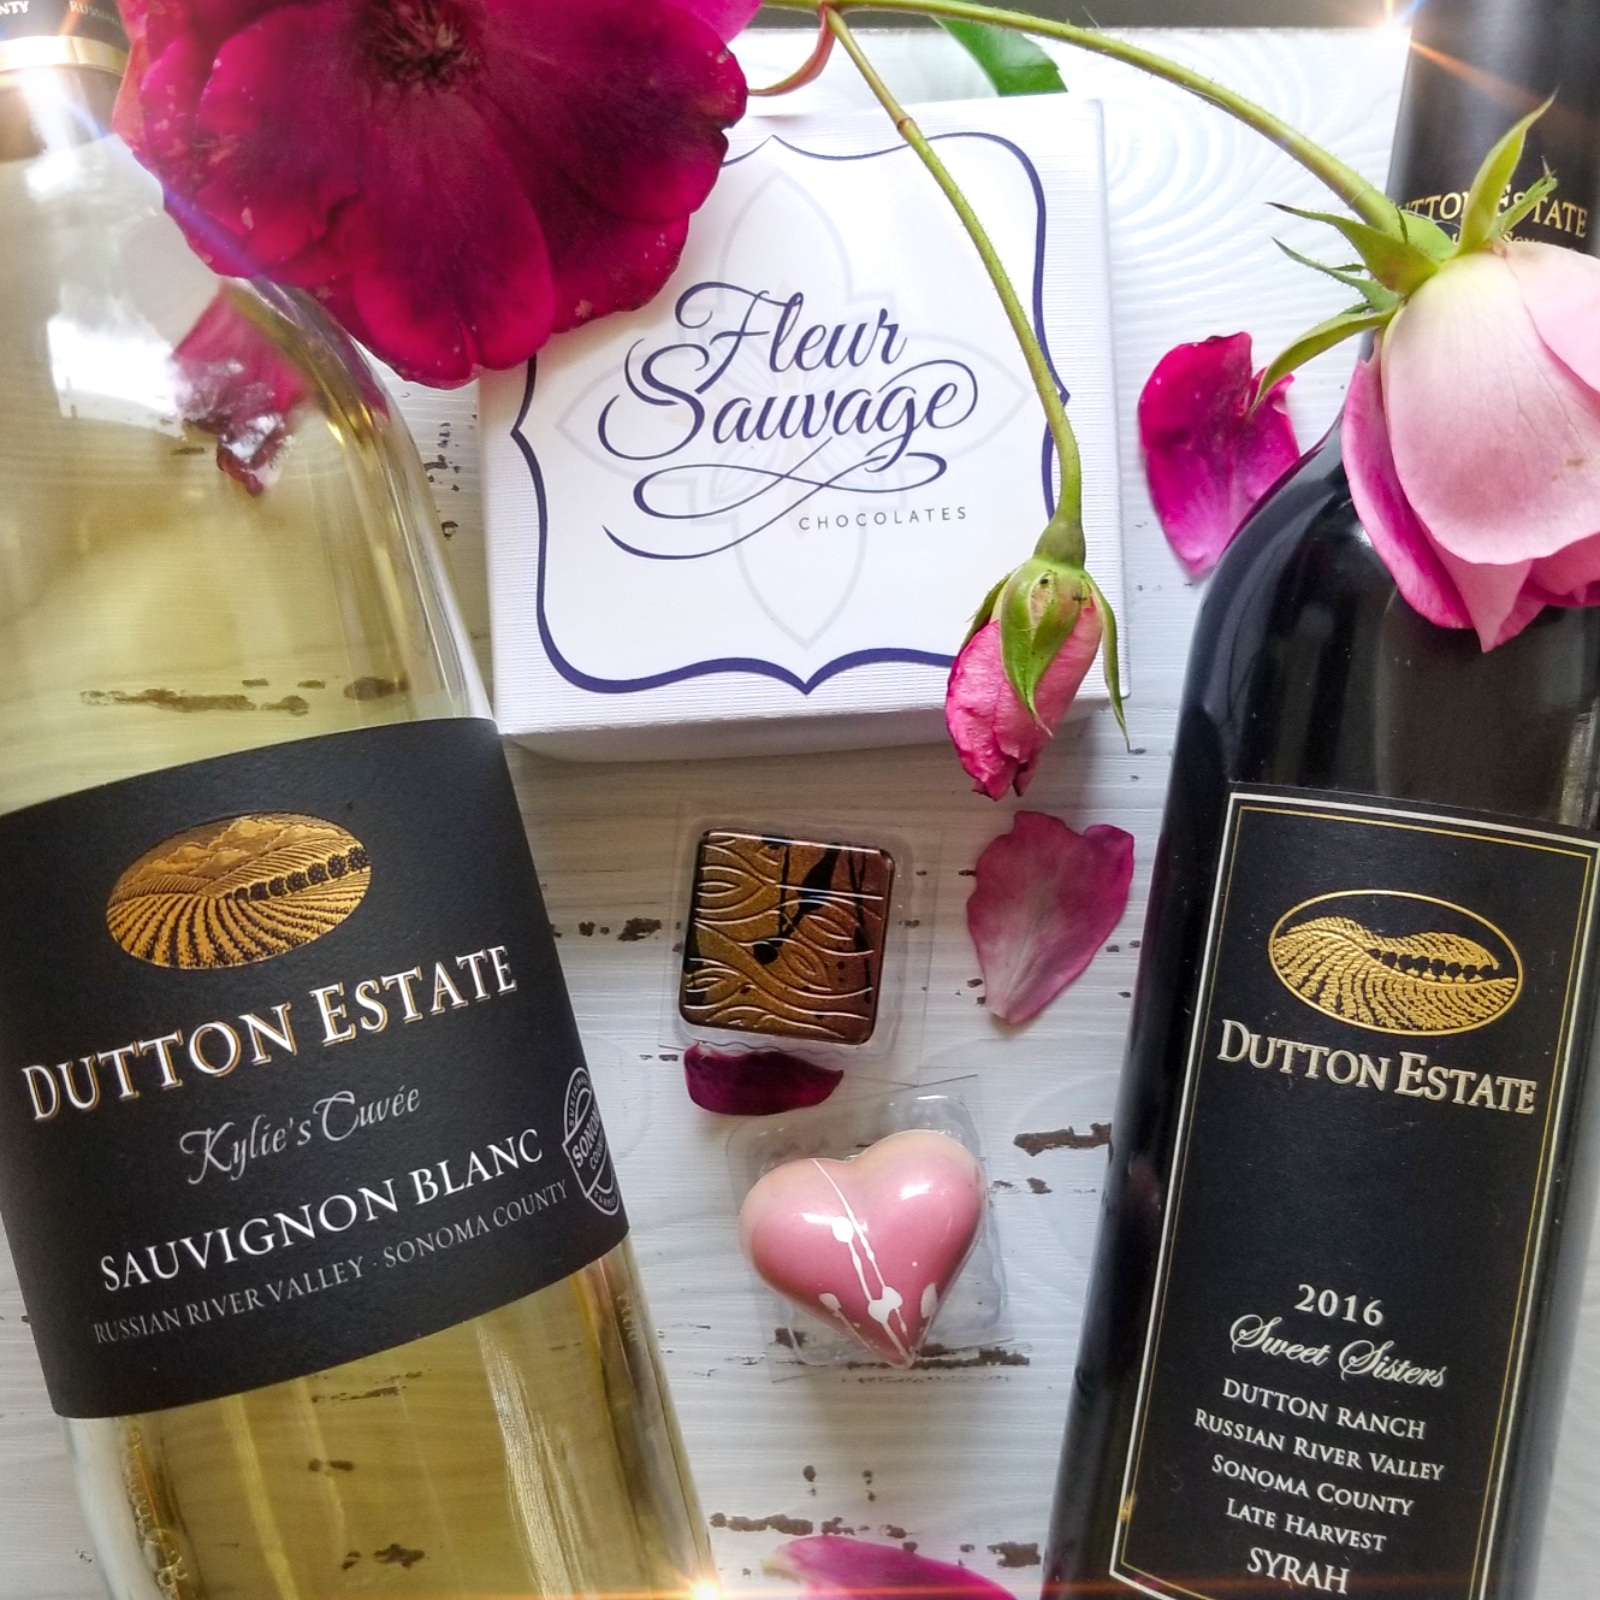 Dutton Estate Wines pairs with Fleur Sauvage Chocolates